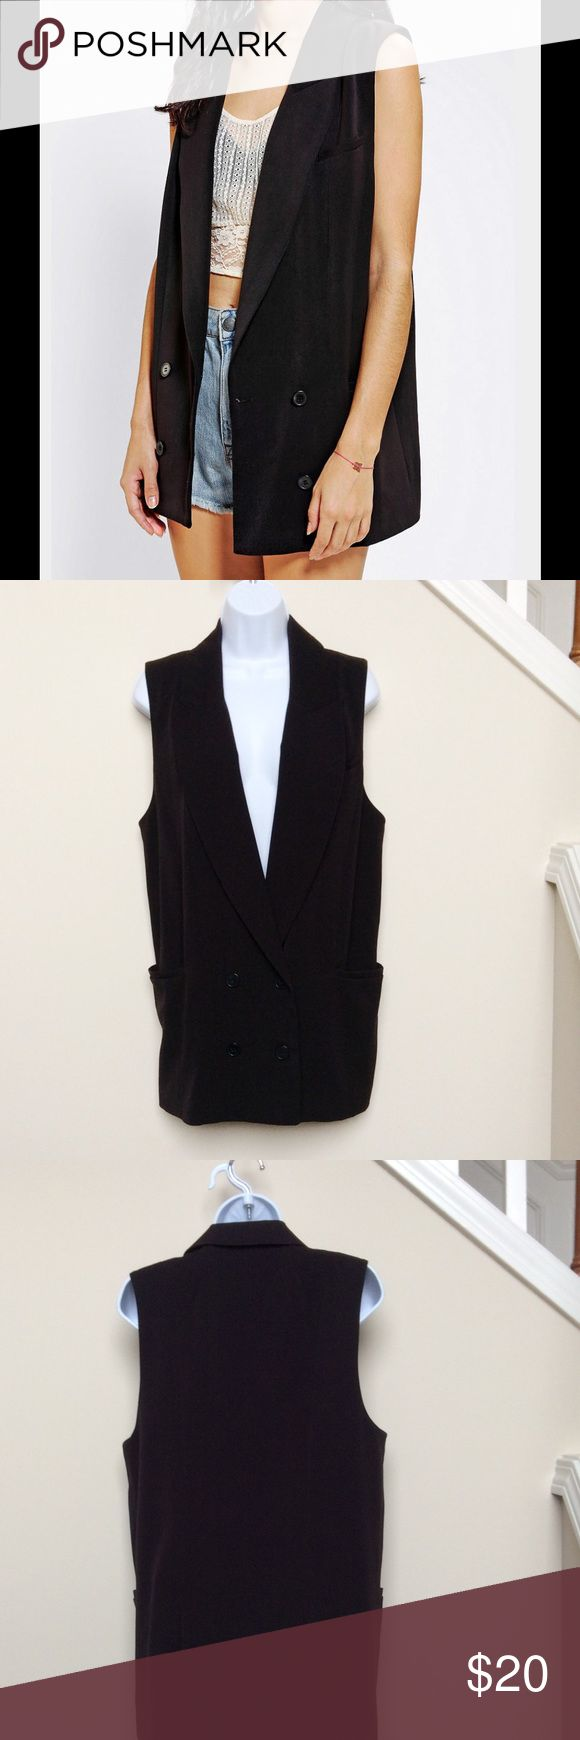 Silence and Noise Sleeveless Black Blazer, NWT! Sleek and classy black sleeveless blazer from Silence + Noise (Urban Outfitters brand).  Blazer is NWT and is a size S, however it is oversized and could likely easily fit a Medium.  Button closure (comes with replacement button); lined. Urban Outfitters Jackets & Coats Blazers